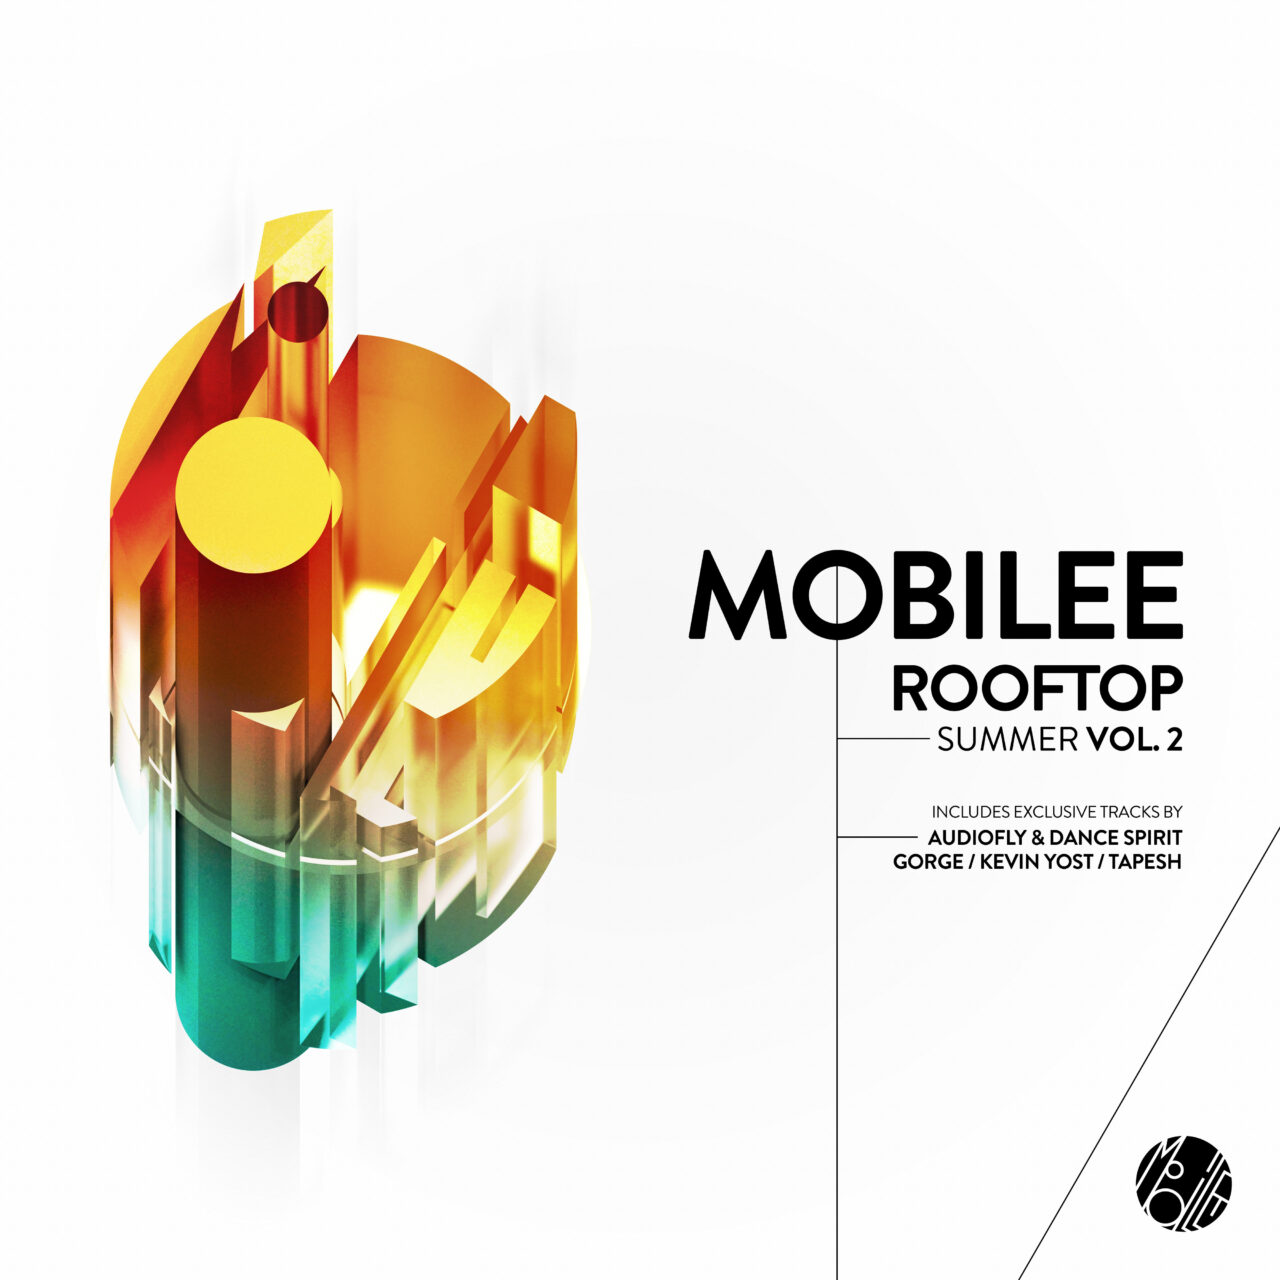 MobileeRooftopSummer-vol2_artwork_4000x4000px_incl